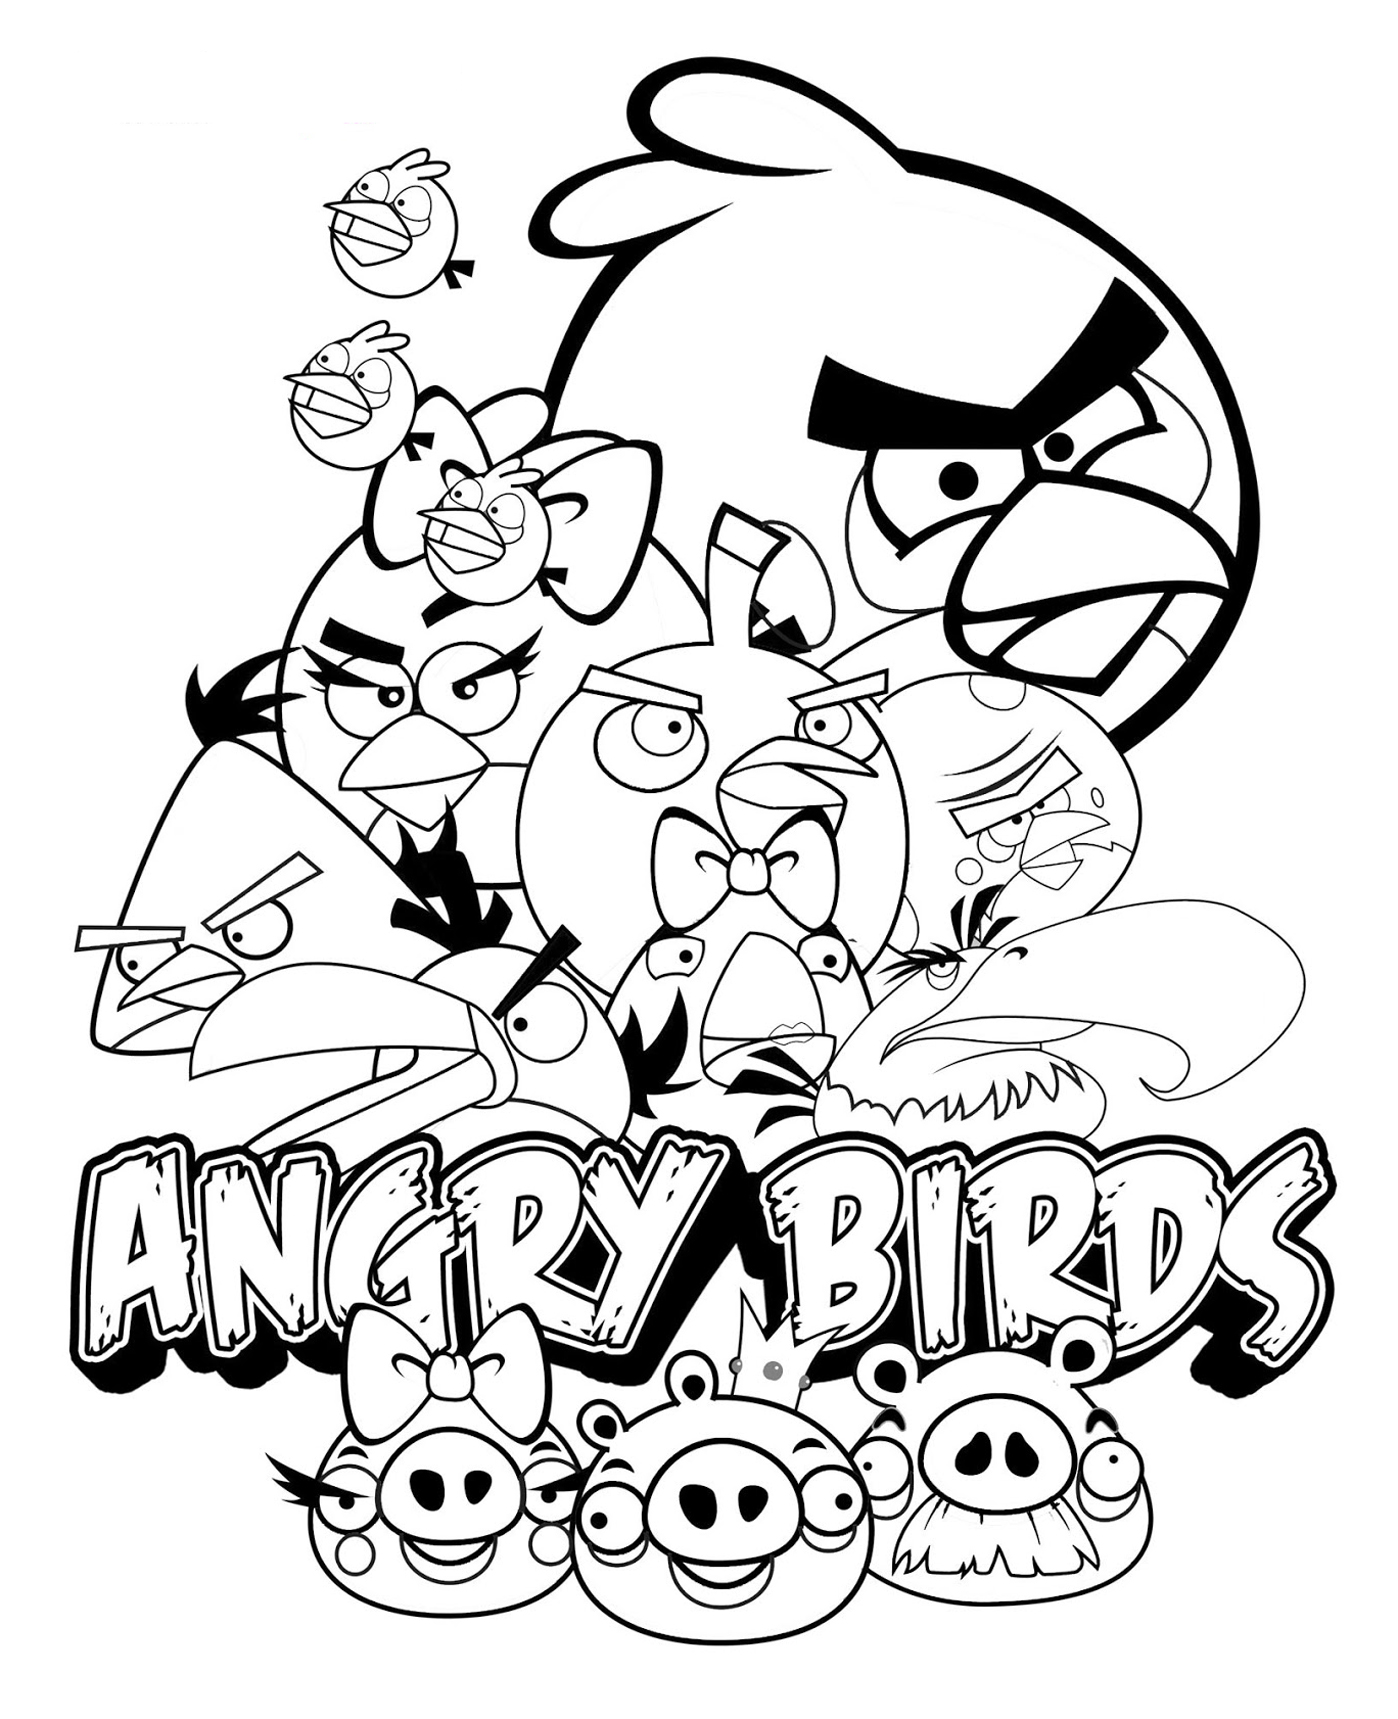 ANGRY BIRDS Dinosaurs Coloring Pages | Colouring Pages for Kids ... | 1719x1398